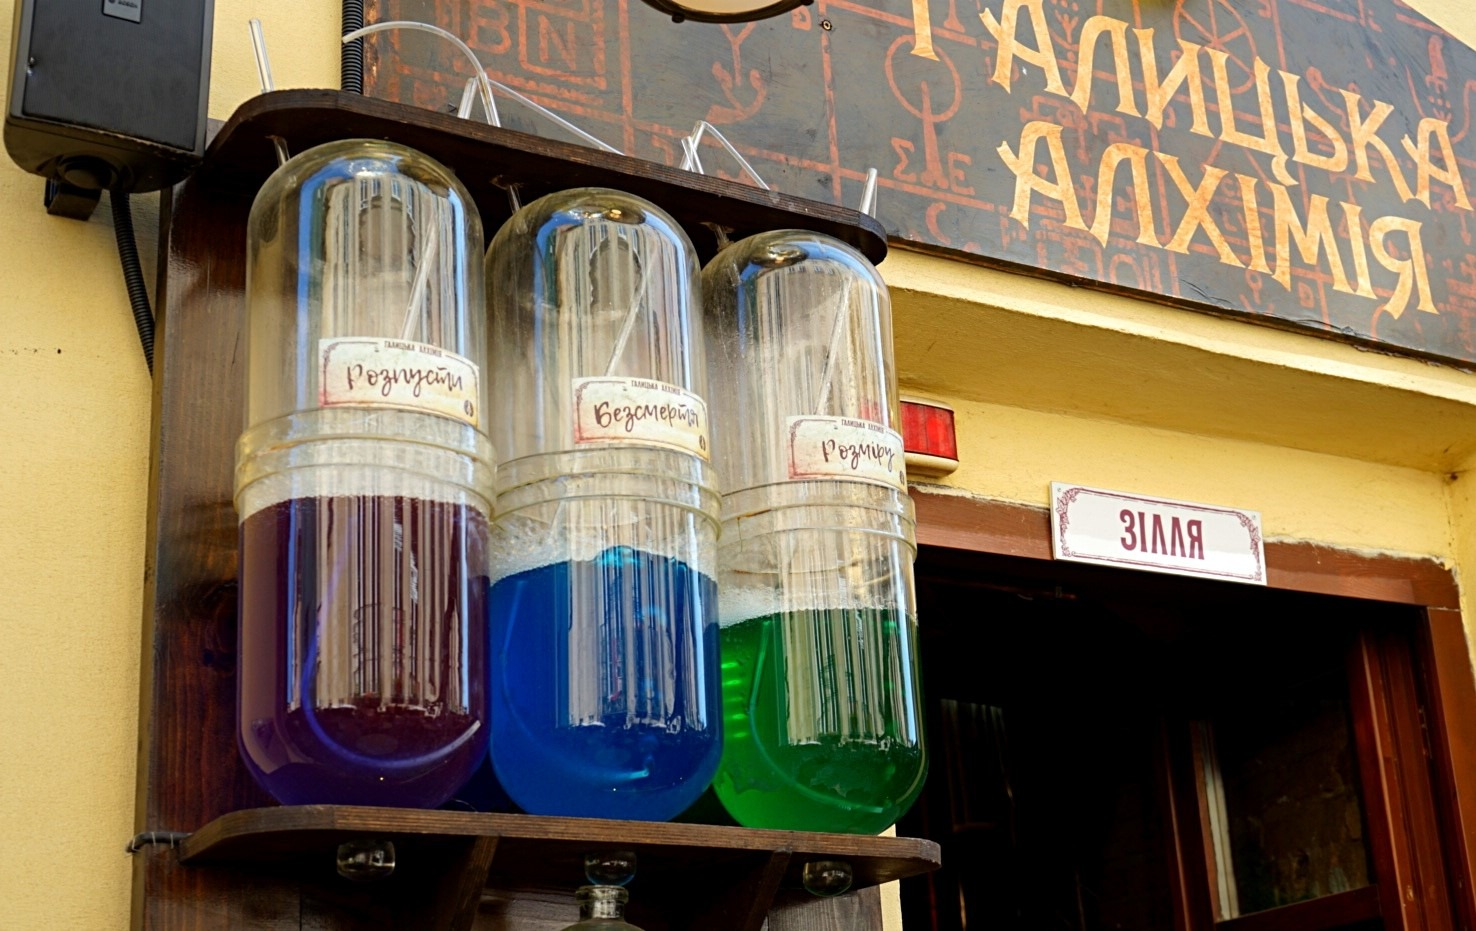 Tinctures at Galician Alchemy in Lviv